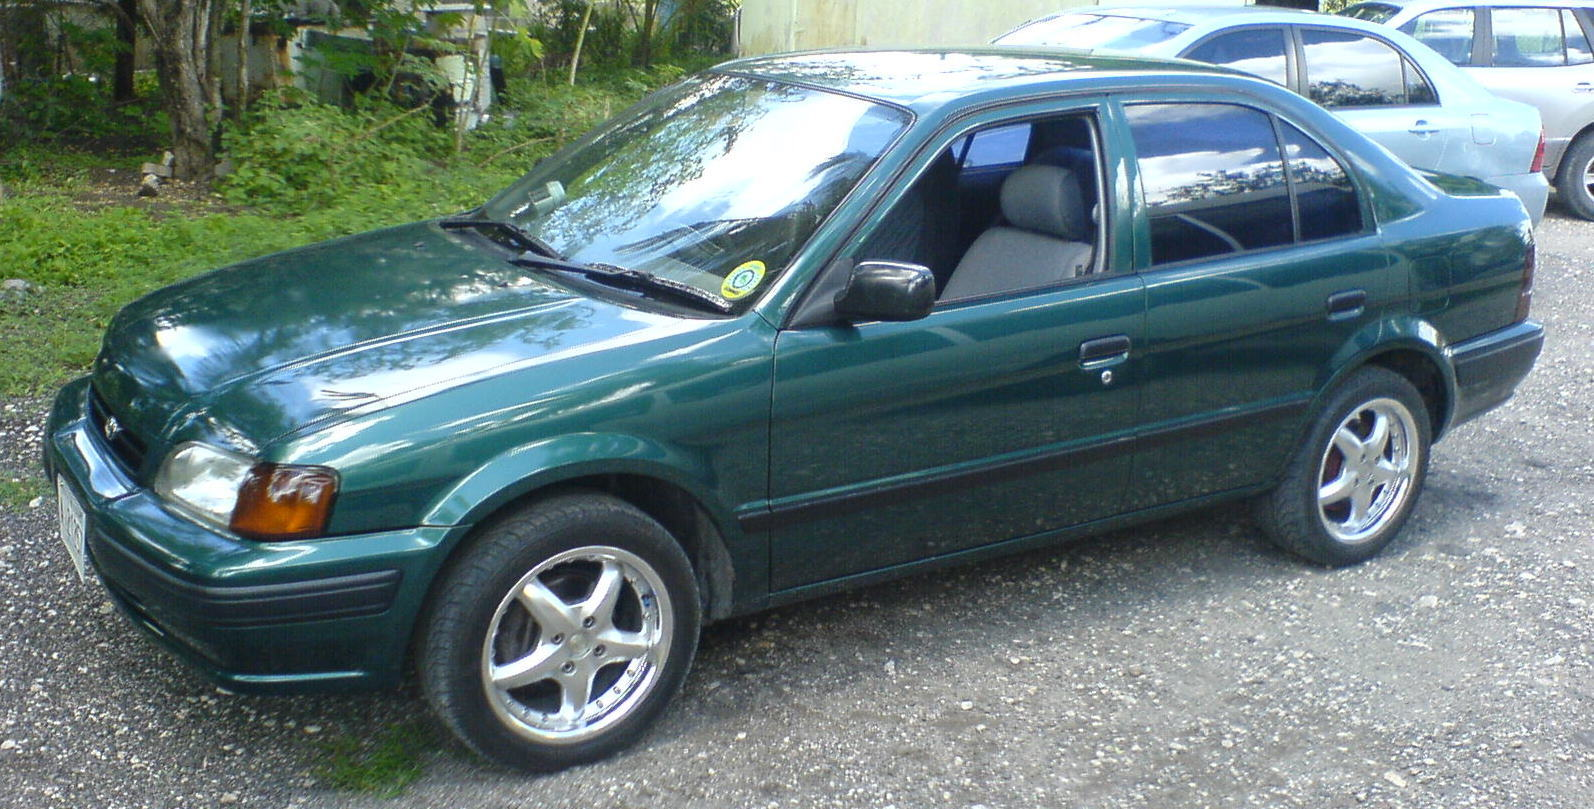 Another Castroltercel 1997 Toyota Tercel post... - 12026293